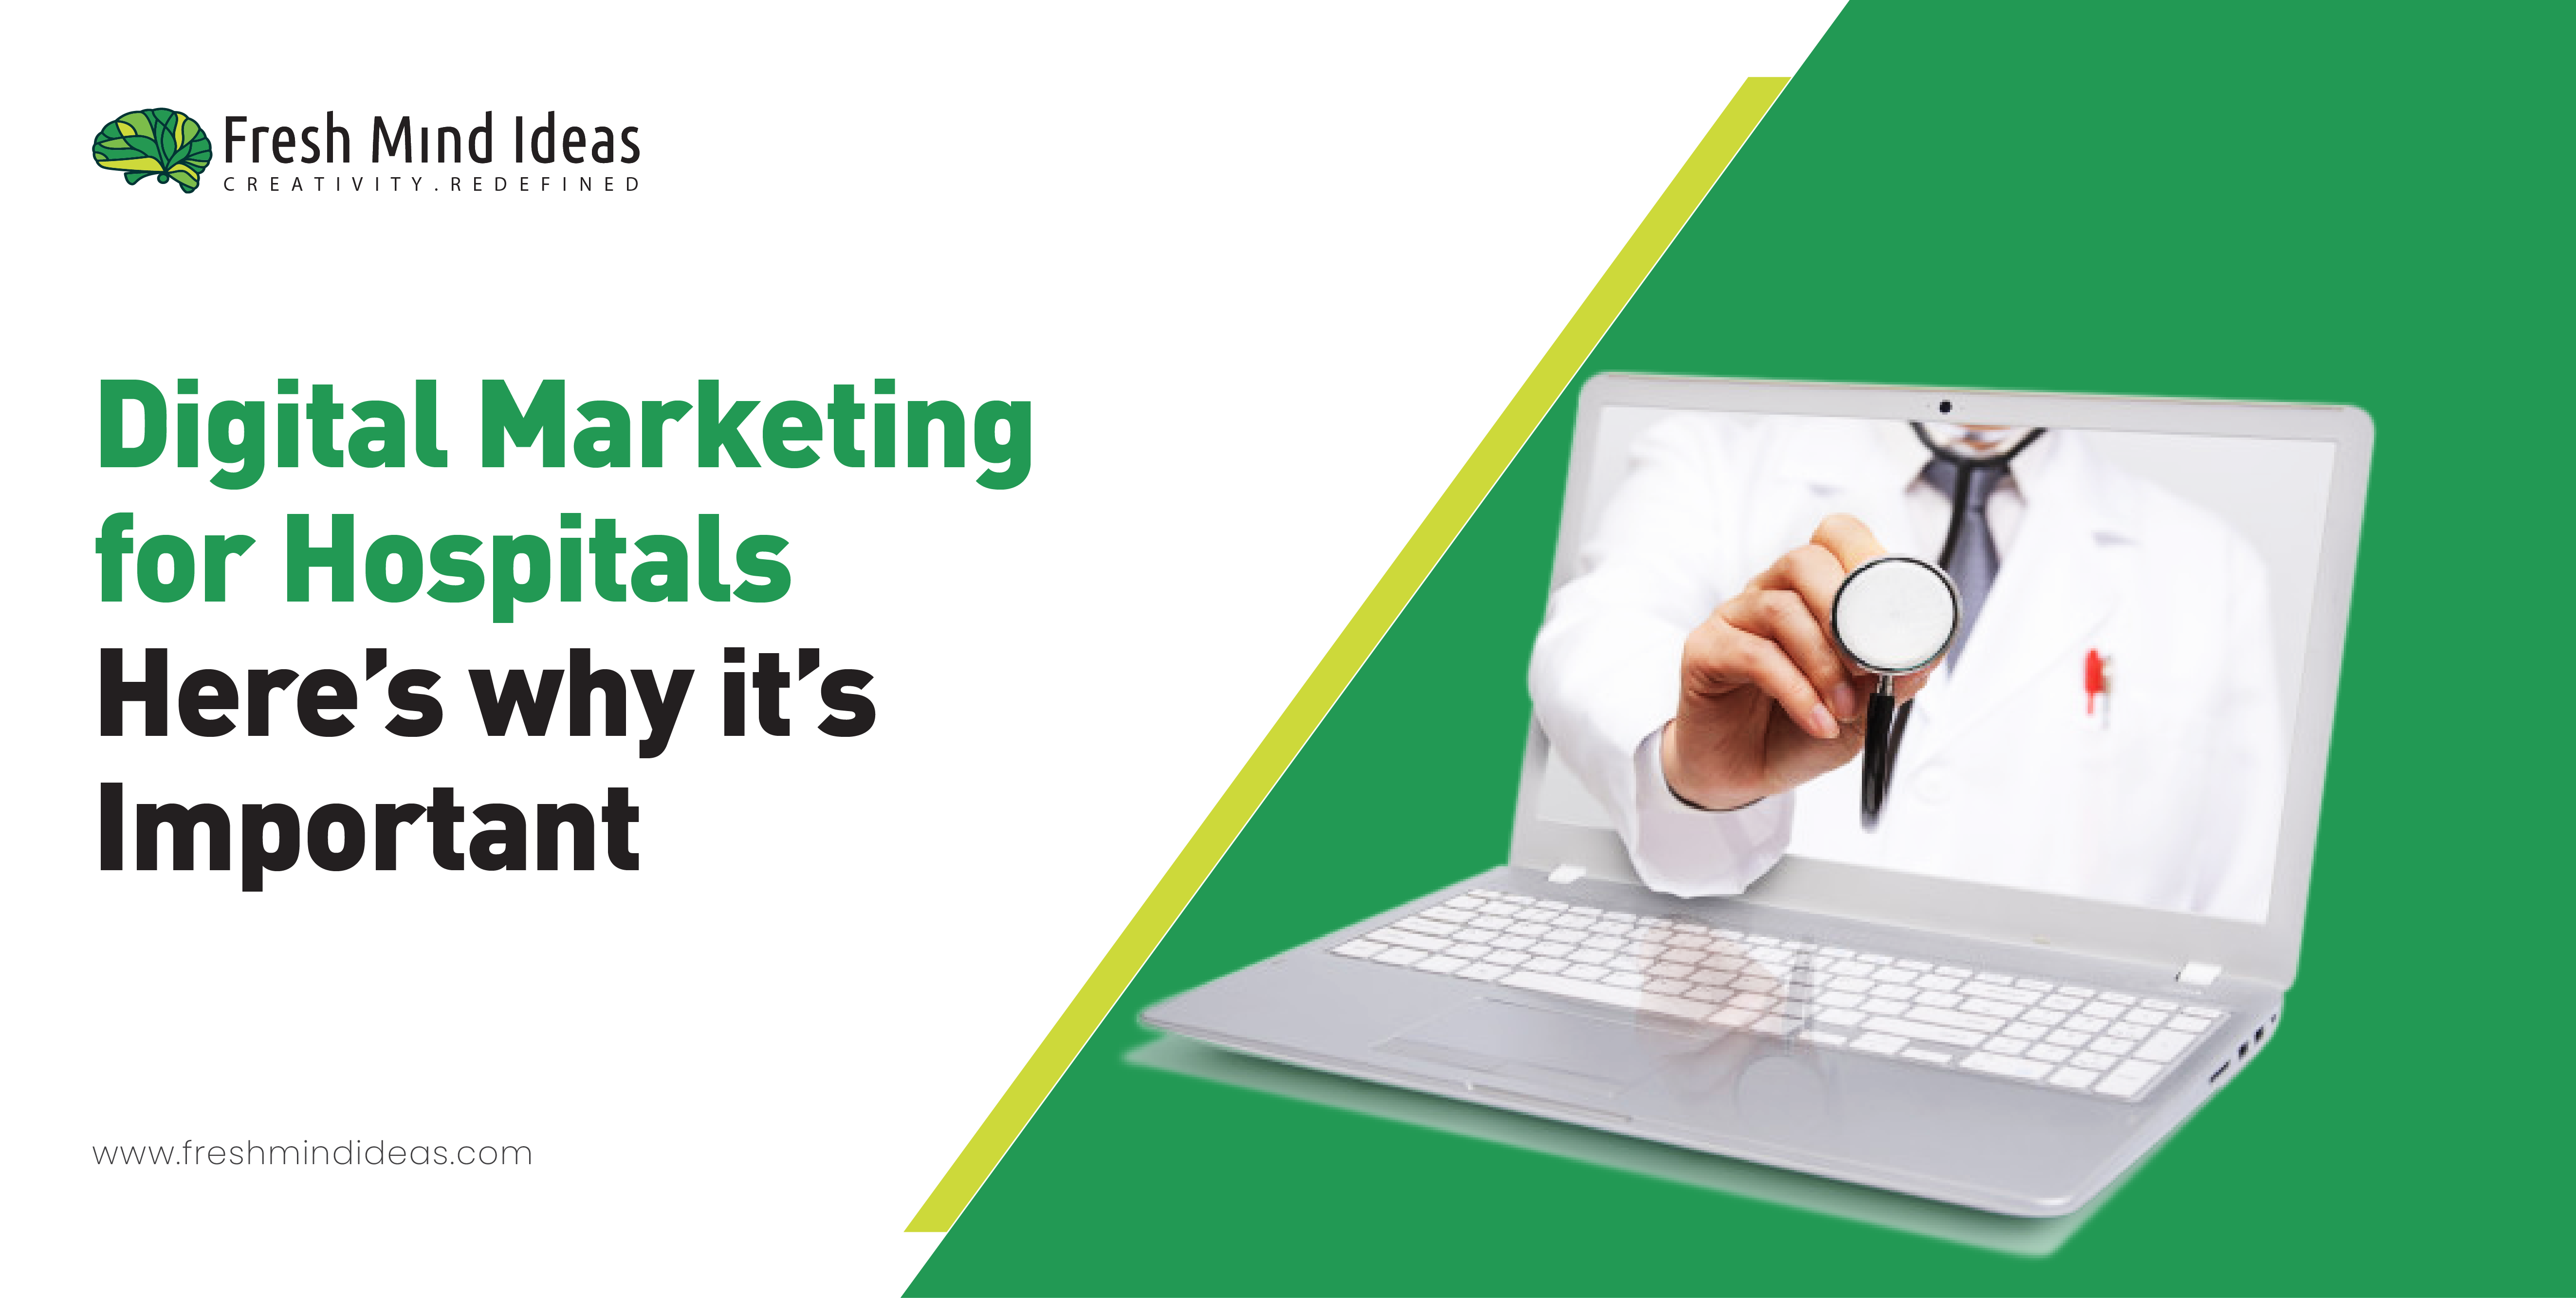 Digital marketing for hospitals here is why it is important.